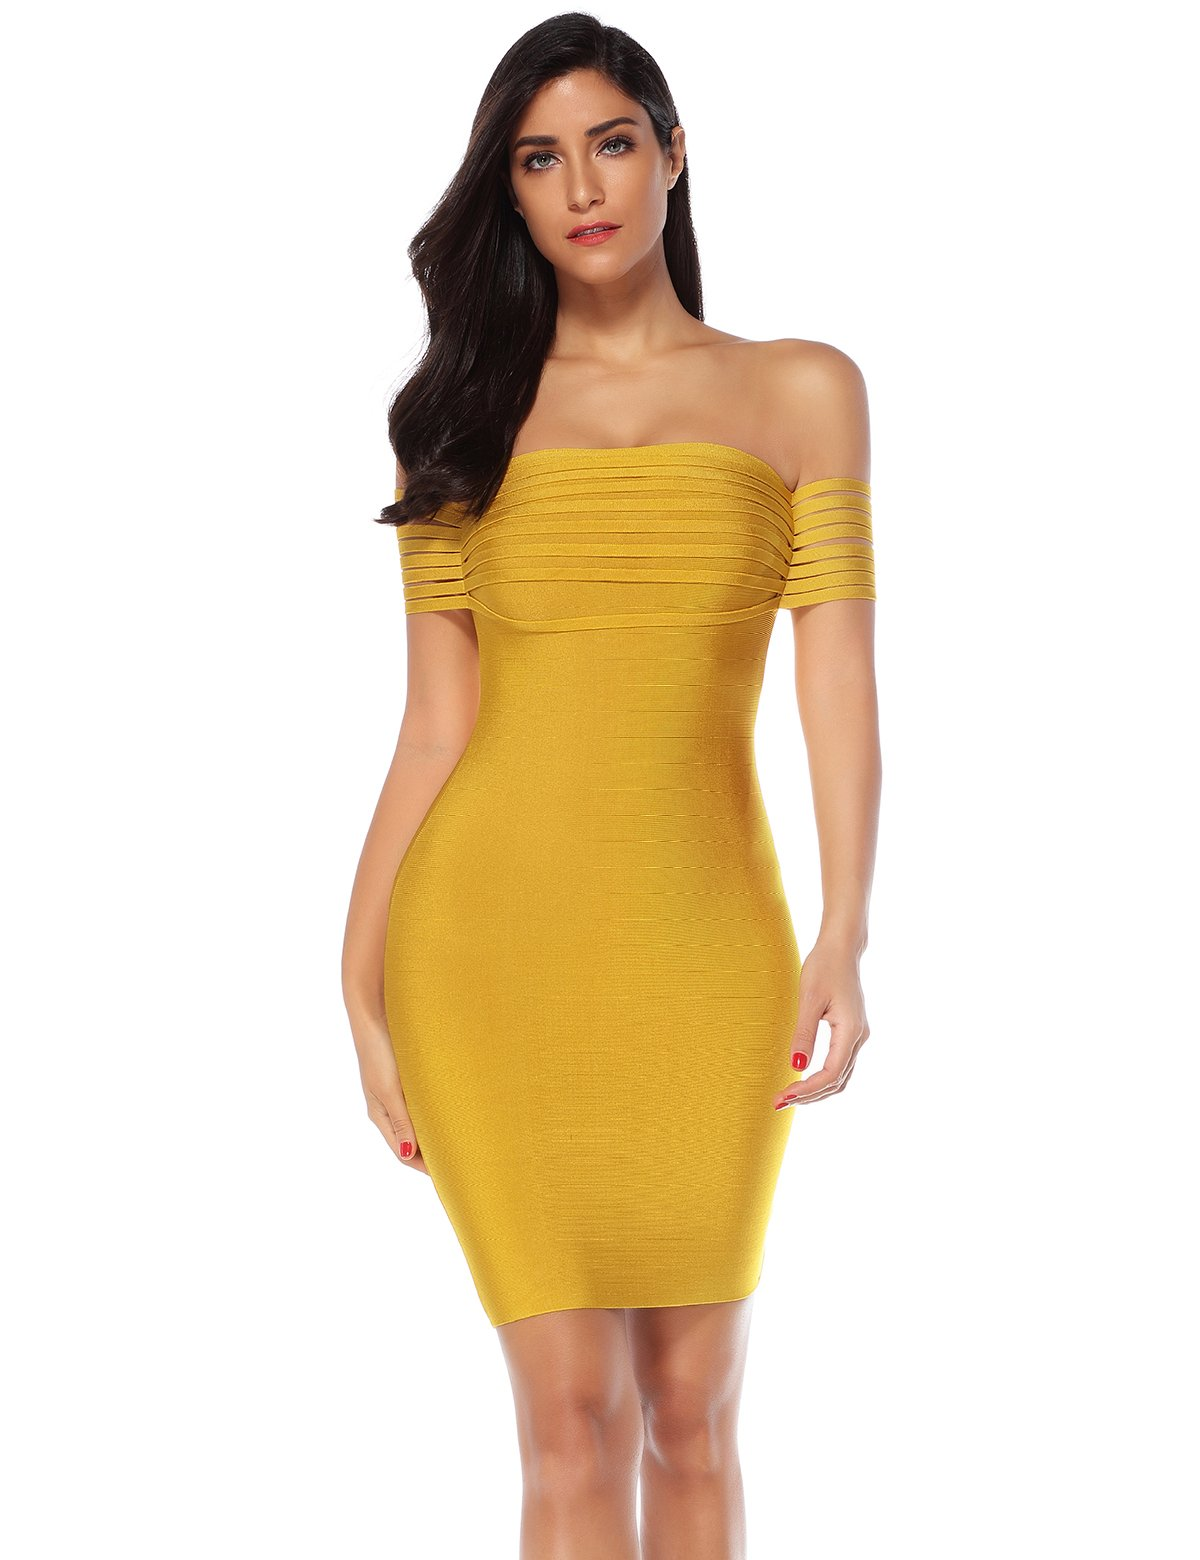 Available at Amazon: Meilun Women's Fringe Off Shoulder Bandage Bodycon Party Celebrity Dress